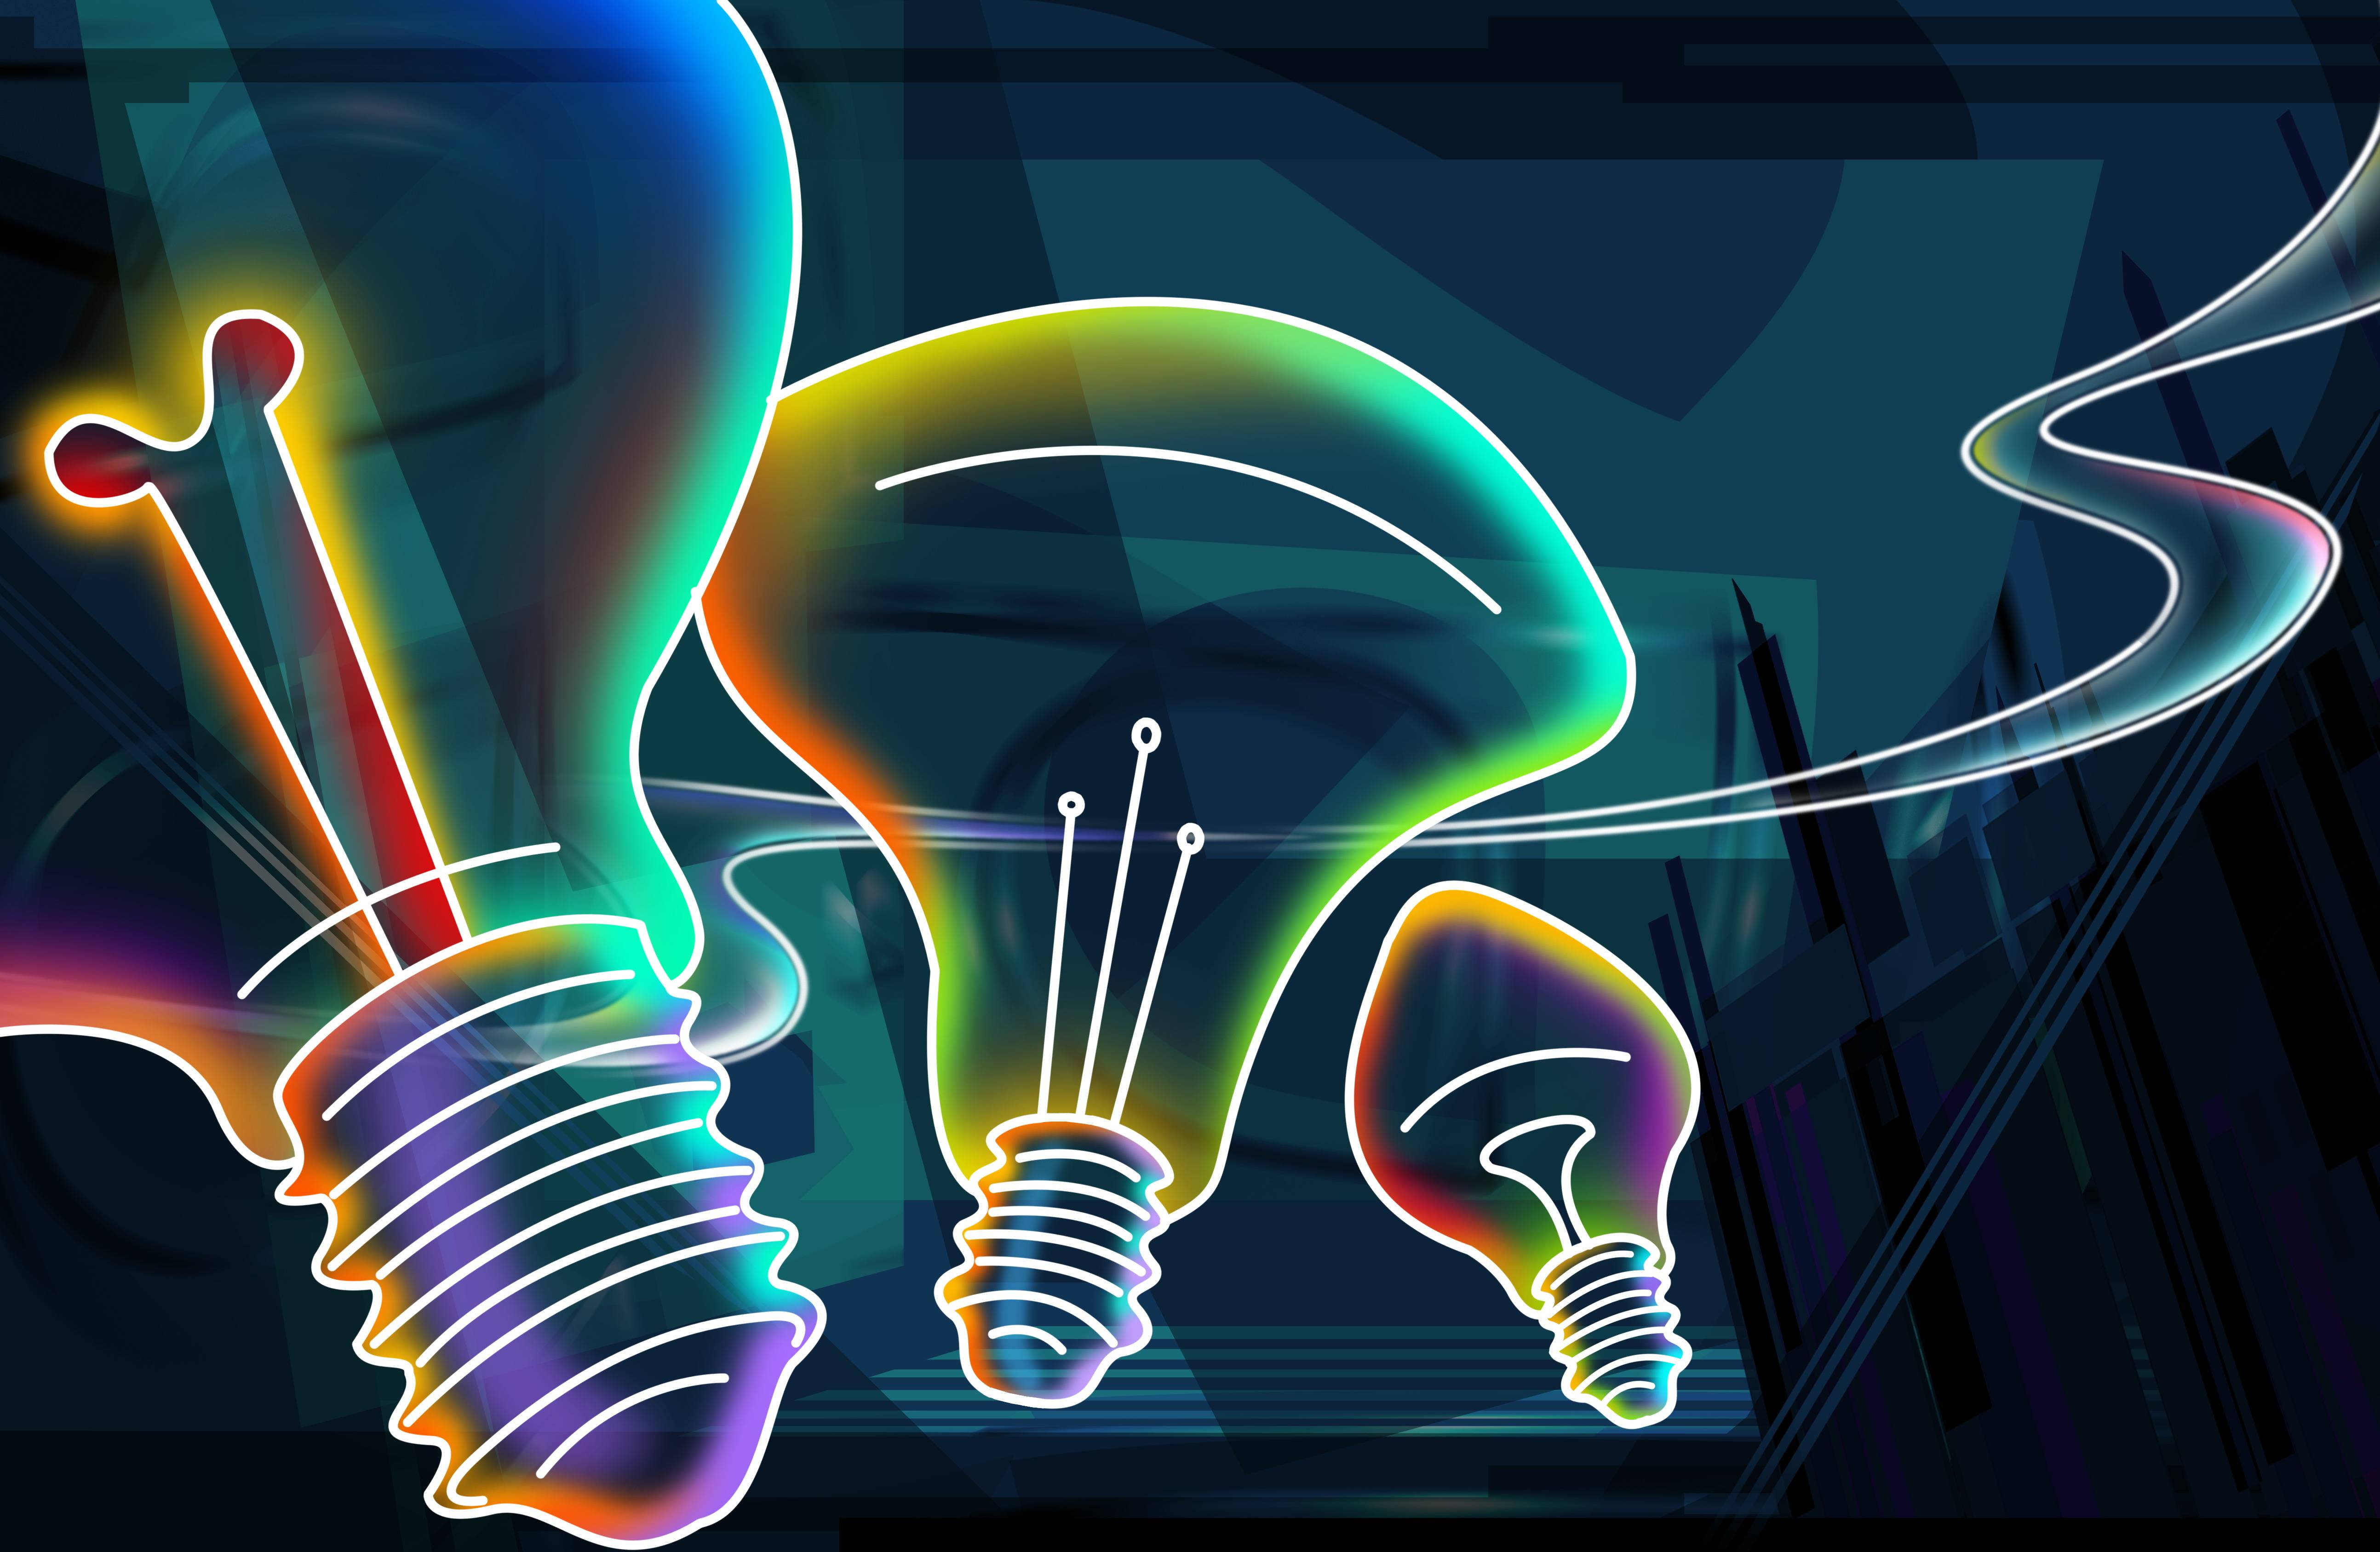 Digital design idea for light-bulbs made with neon lights.